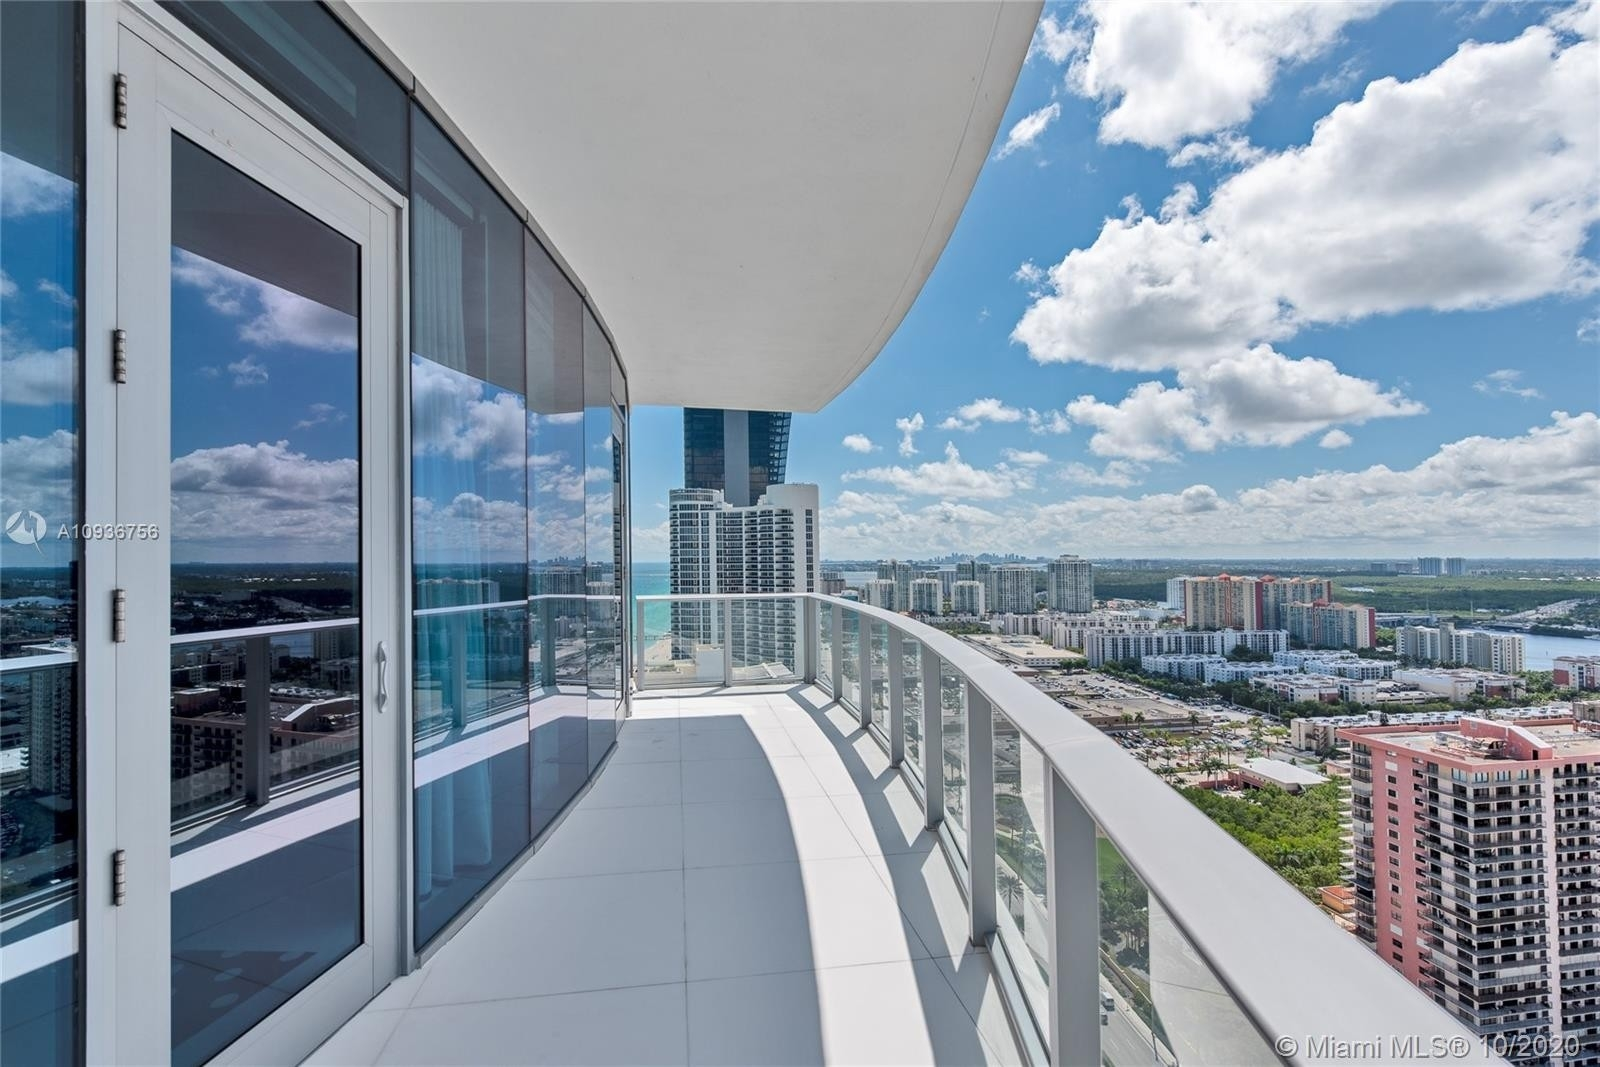 20. Condominiums for Sale at 17475 Collins Ave , 2602 Sunny Isles Beach, FL 33160